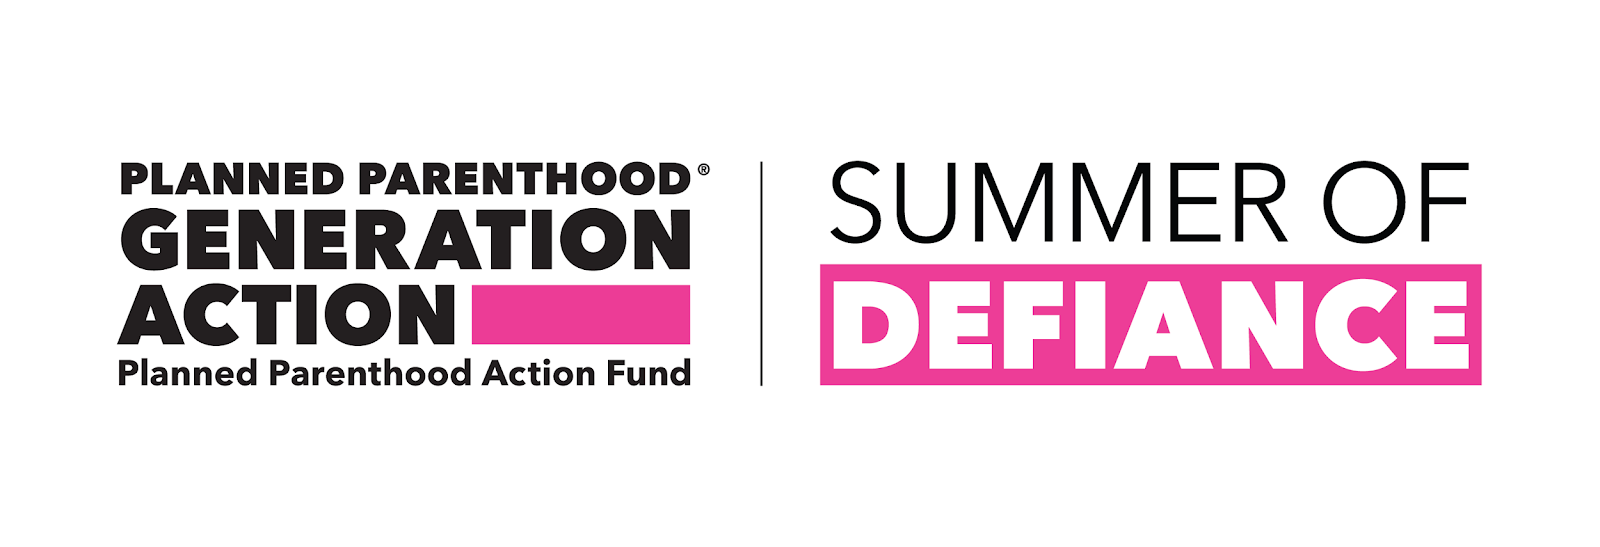 ... Generation Action, a project of the Planned Parenthood Action Fund, in partnership with Change Corps are proud to launch the Summer of Defiance.